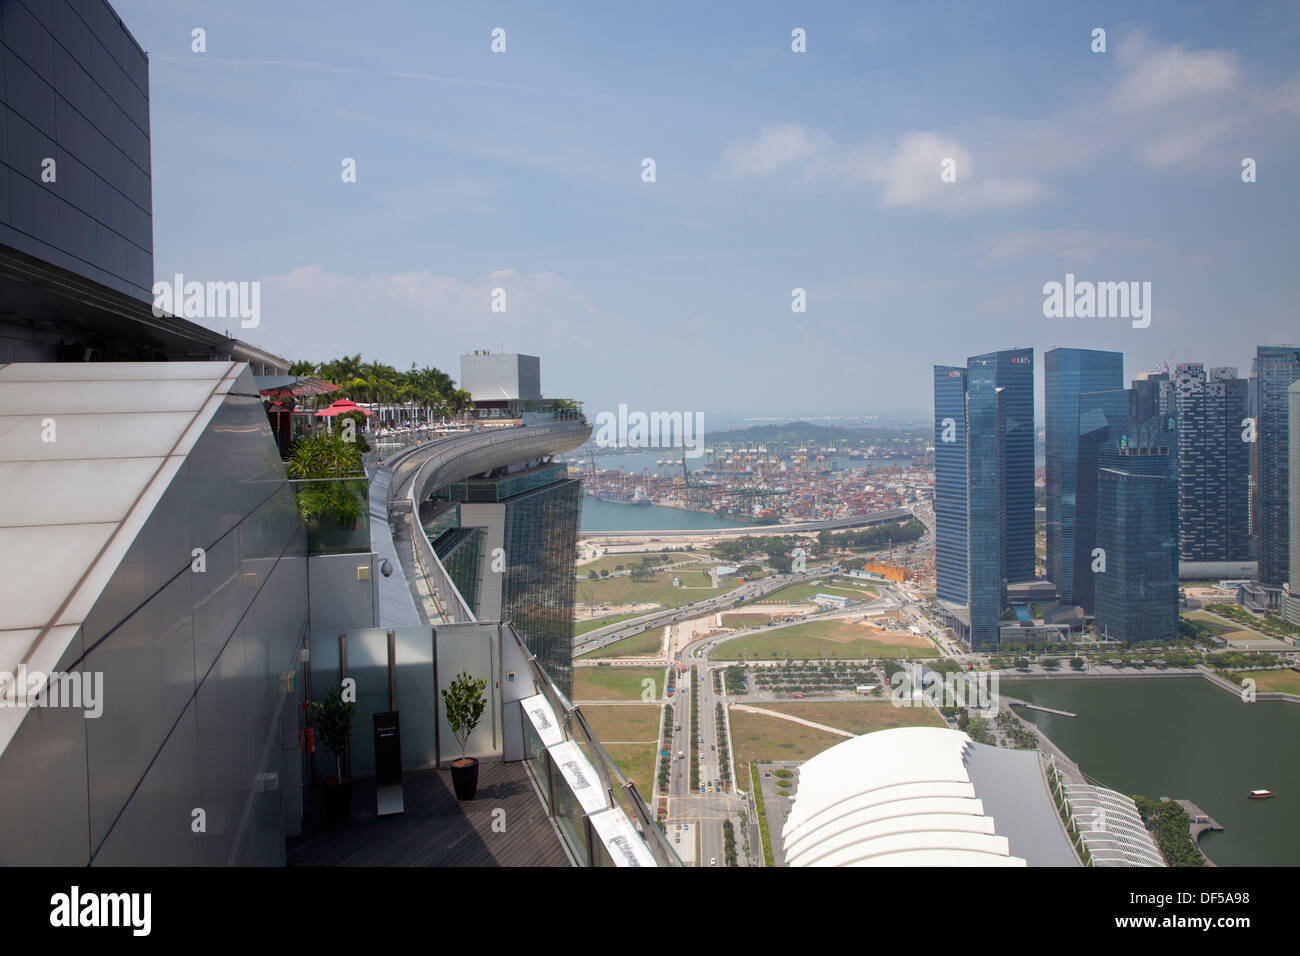 Marina Bay Sands Hotel Roof Pool Singapore Asia Destination View Stock Photo 60968804 Alamy